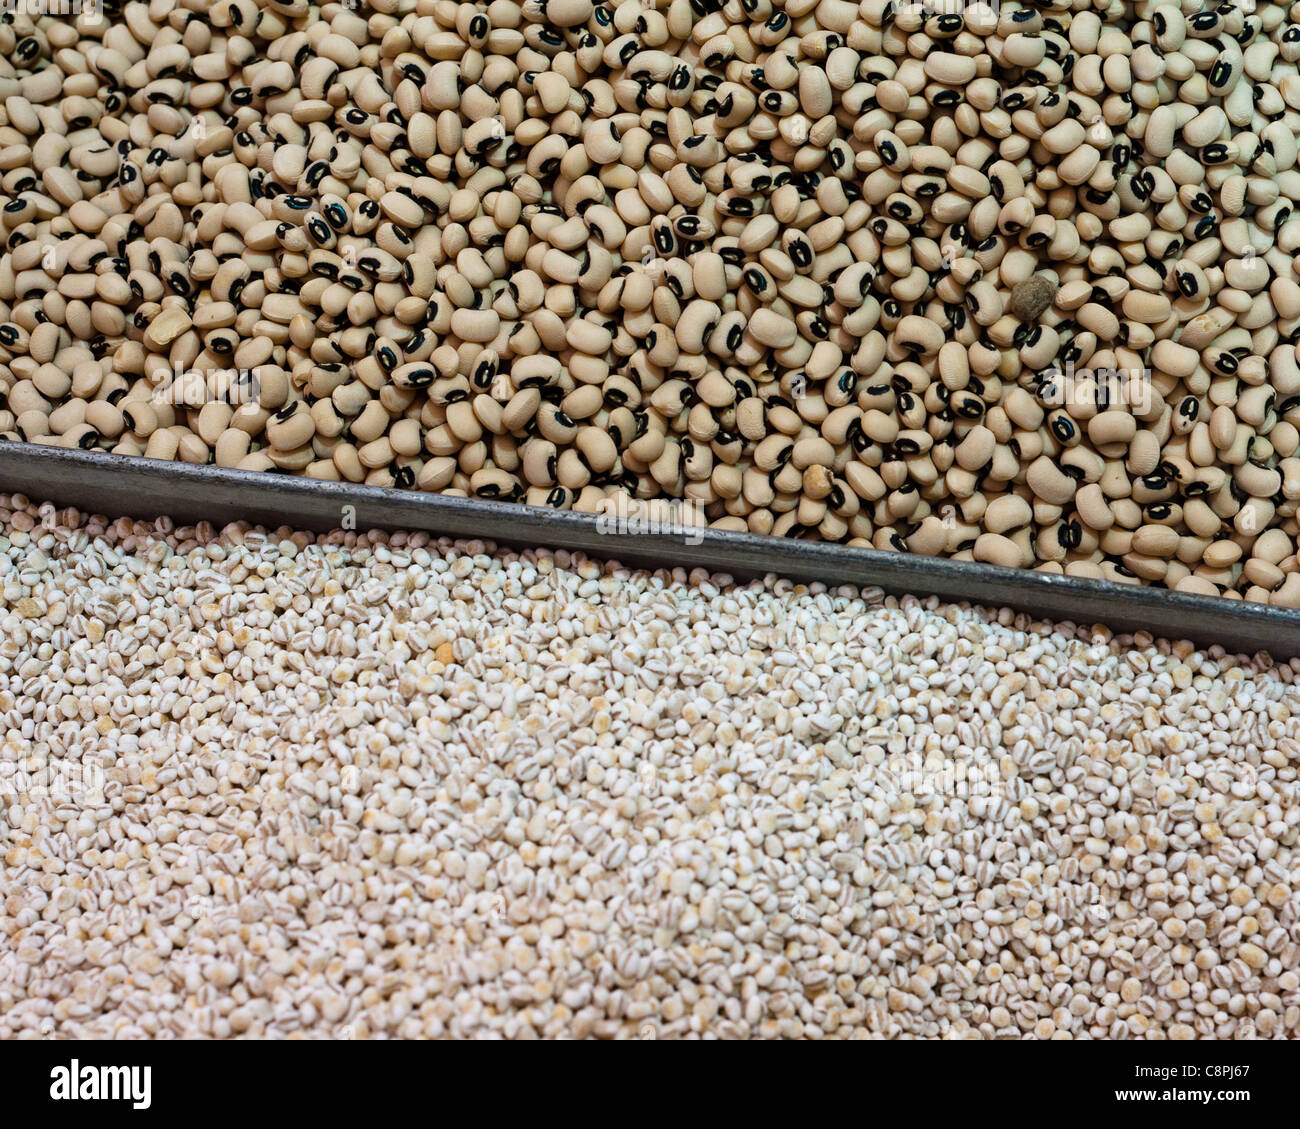 Beans and Groat . - Stock Image